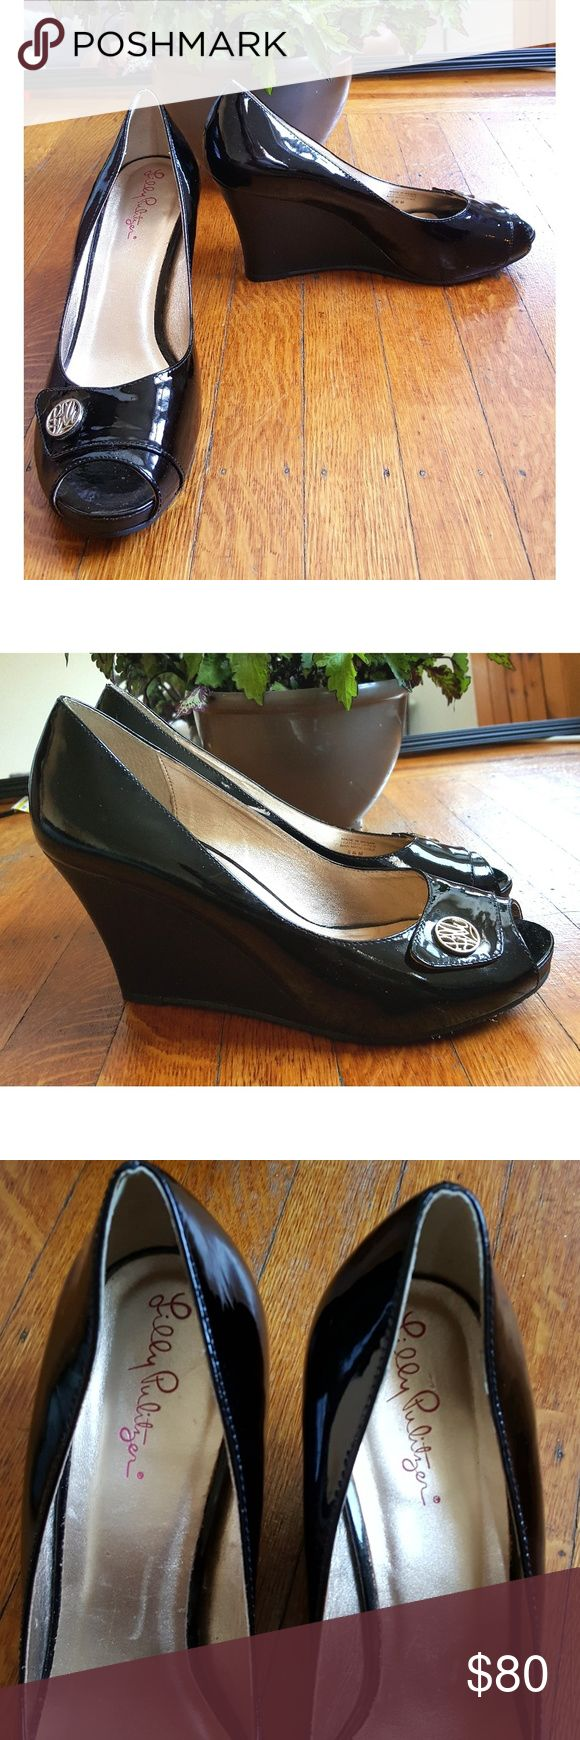 Lilly Pulitzer resort chic wedge Gorgeous patent leather Lilly Pulitzer resort chic button wedge heels. Opwn toe style.  Has Lilly logo on button.  Approximately 3 1/2 inch heel.  EUC. Lilly Pulitzer Shoes Wedges